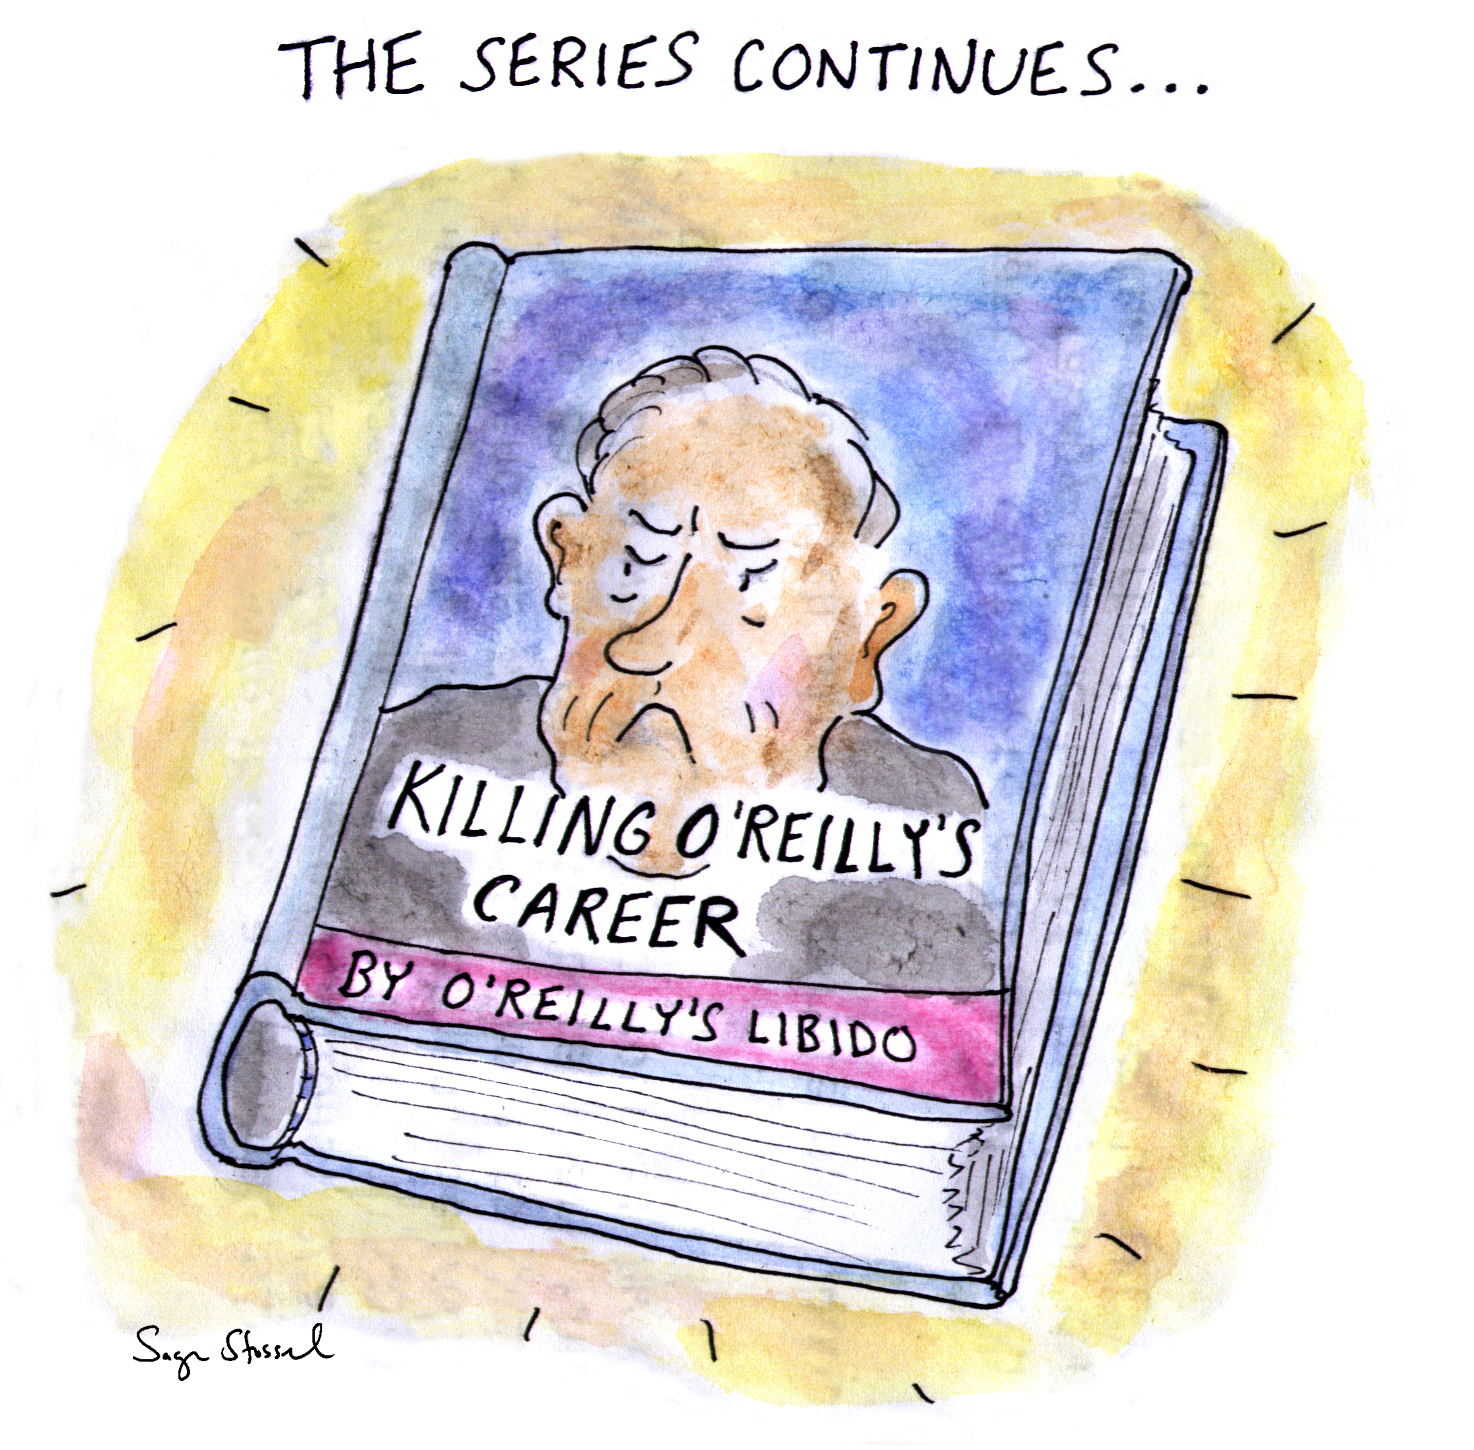 bill o'reilly, fox news, sexual harassment, ousted, killing book series, women, news business, cartoon